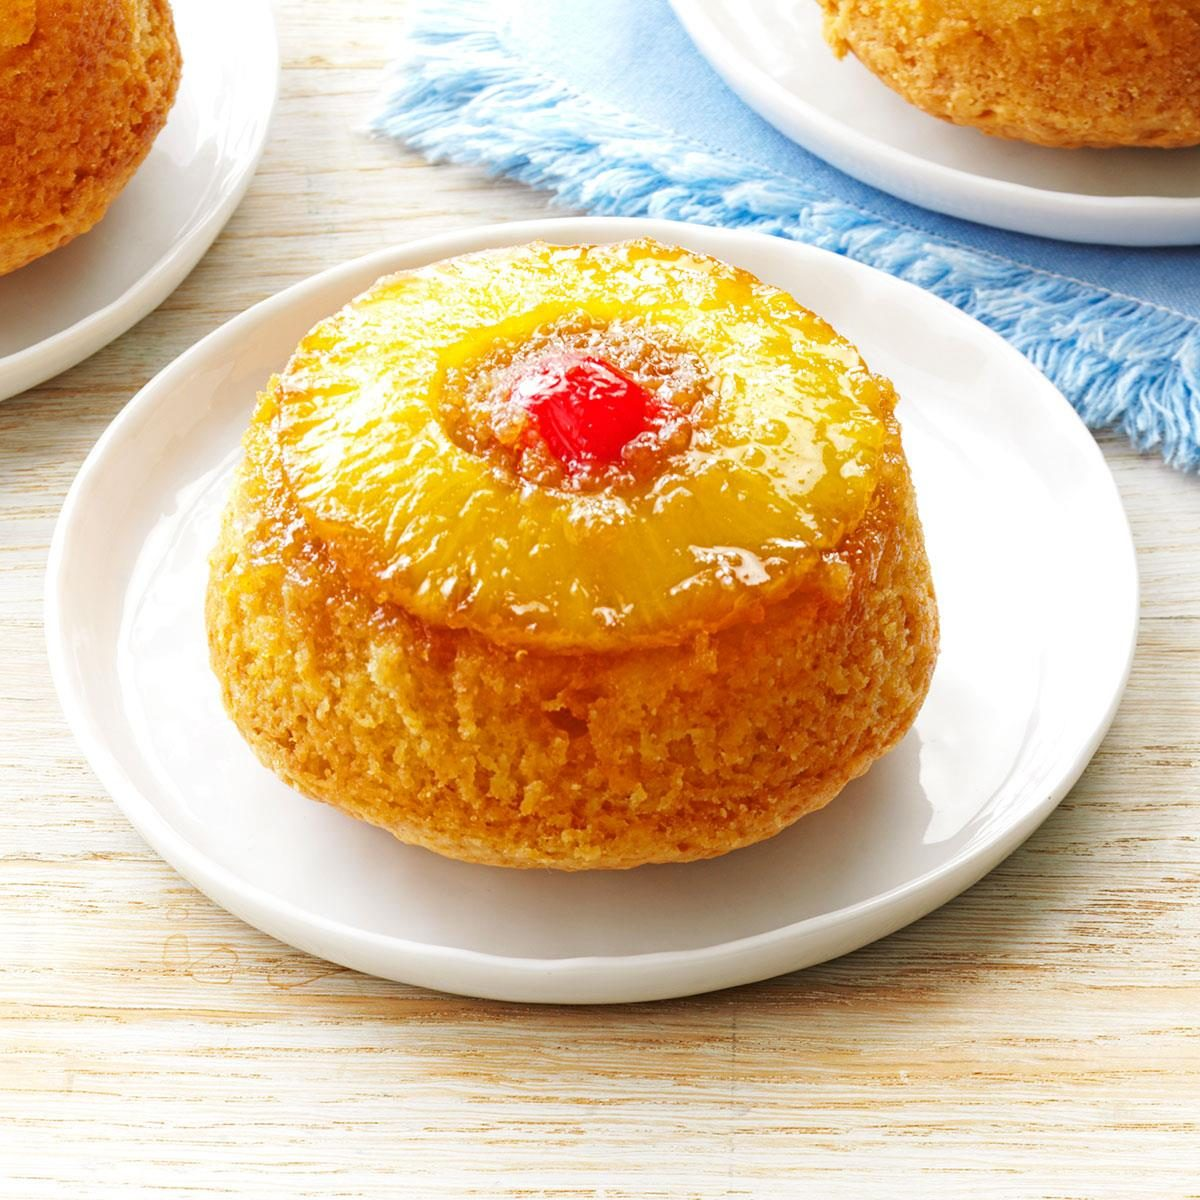 Healthy Pineapple Upside Down Cake Recipe